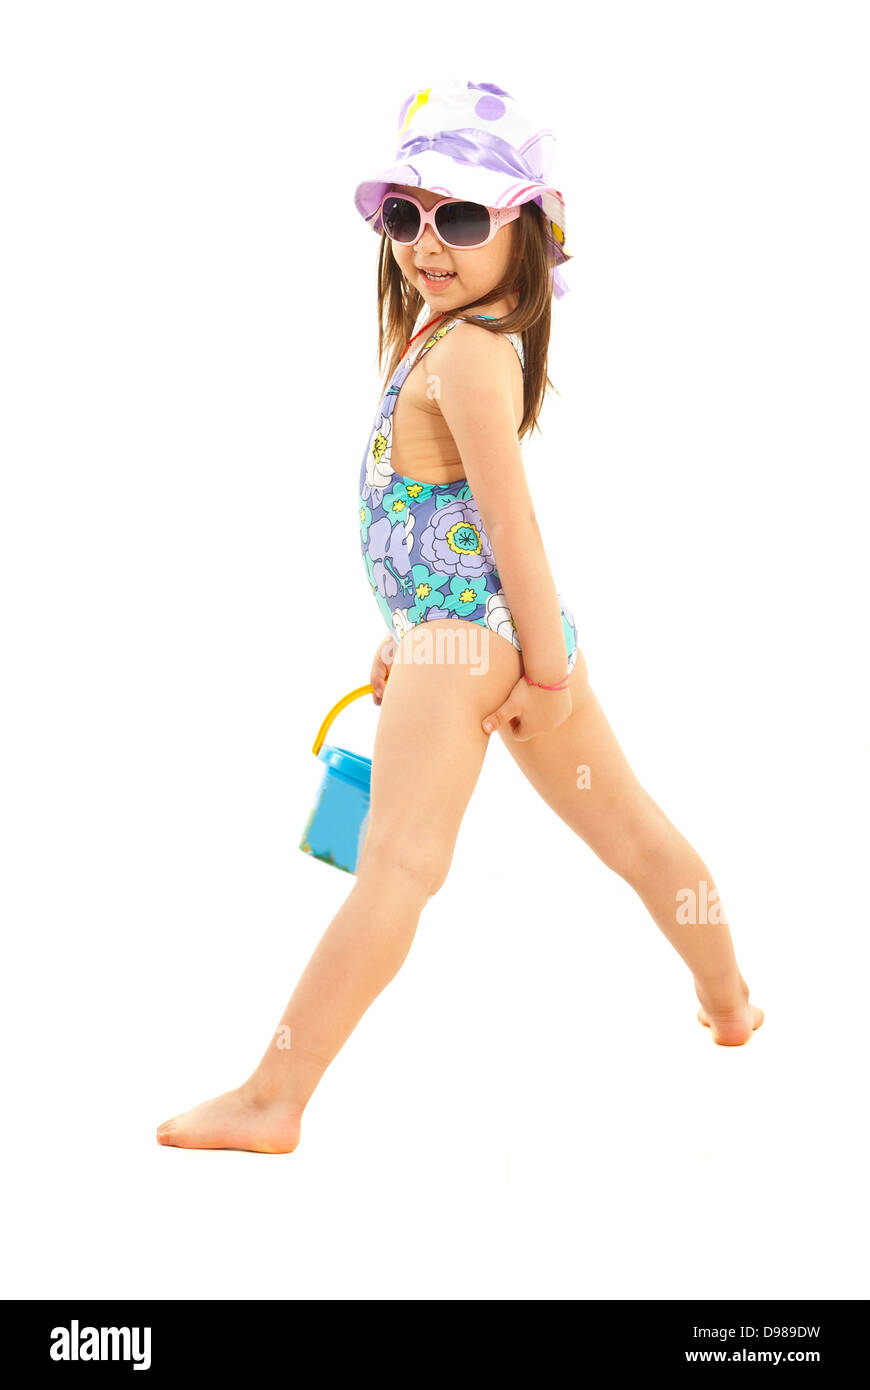 803d90084b12f Cute little girl in swimsuit ,sunglasses and sun hat posing isolated on  white background